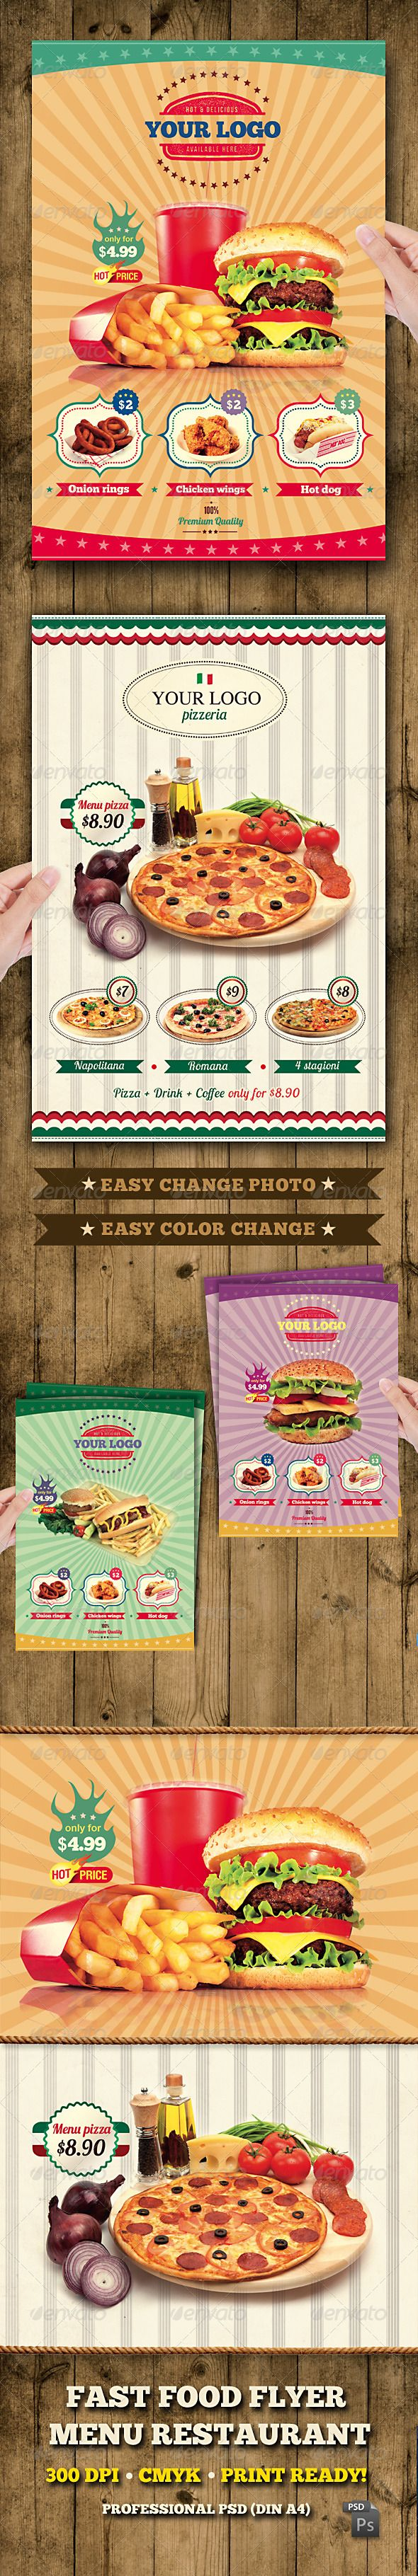 Fast Food Flyer Menu Restaurant A4 #GraphicRiver Fast Food Flyer Menu Restaurant A4 Fast Food flyer suitable for any food Restaurants. It can be Flyer, Poster, Press Ad. Just change text and images, your flyer print ready!! Features • The final package you download includes a fully layered, renamed, grouped PSD file. • Easy to modify, change colors, dimensions, all text editable. • The PSD file is setup at 2480px x 3508px (Din A4) • CMYK 300DPI • Easy model Photo Replacement • The PSD file…